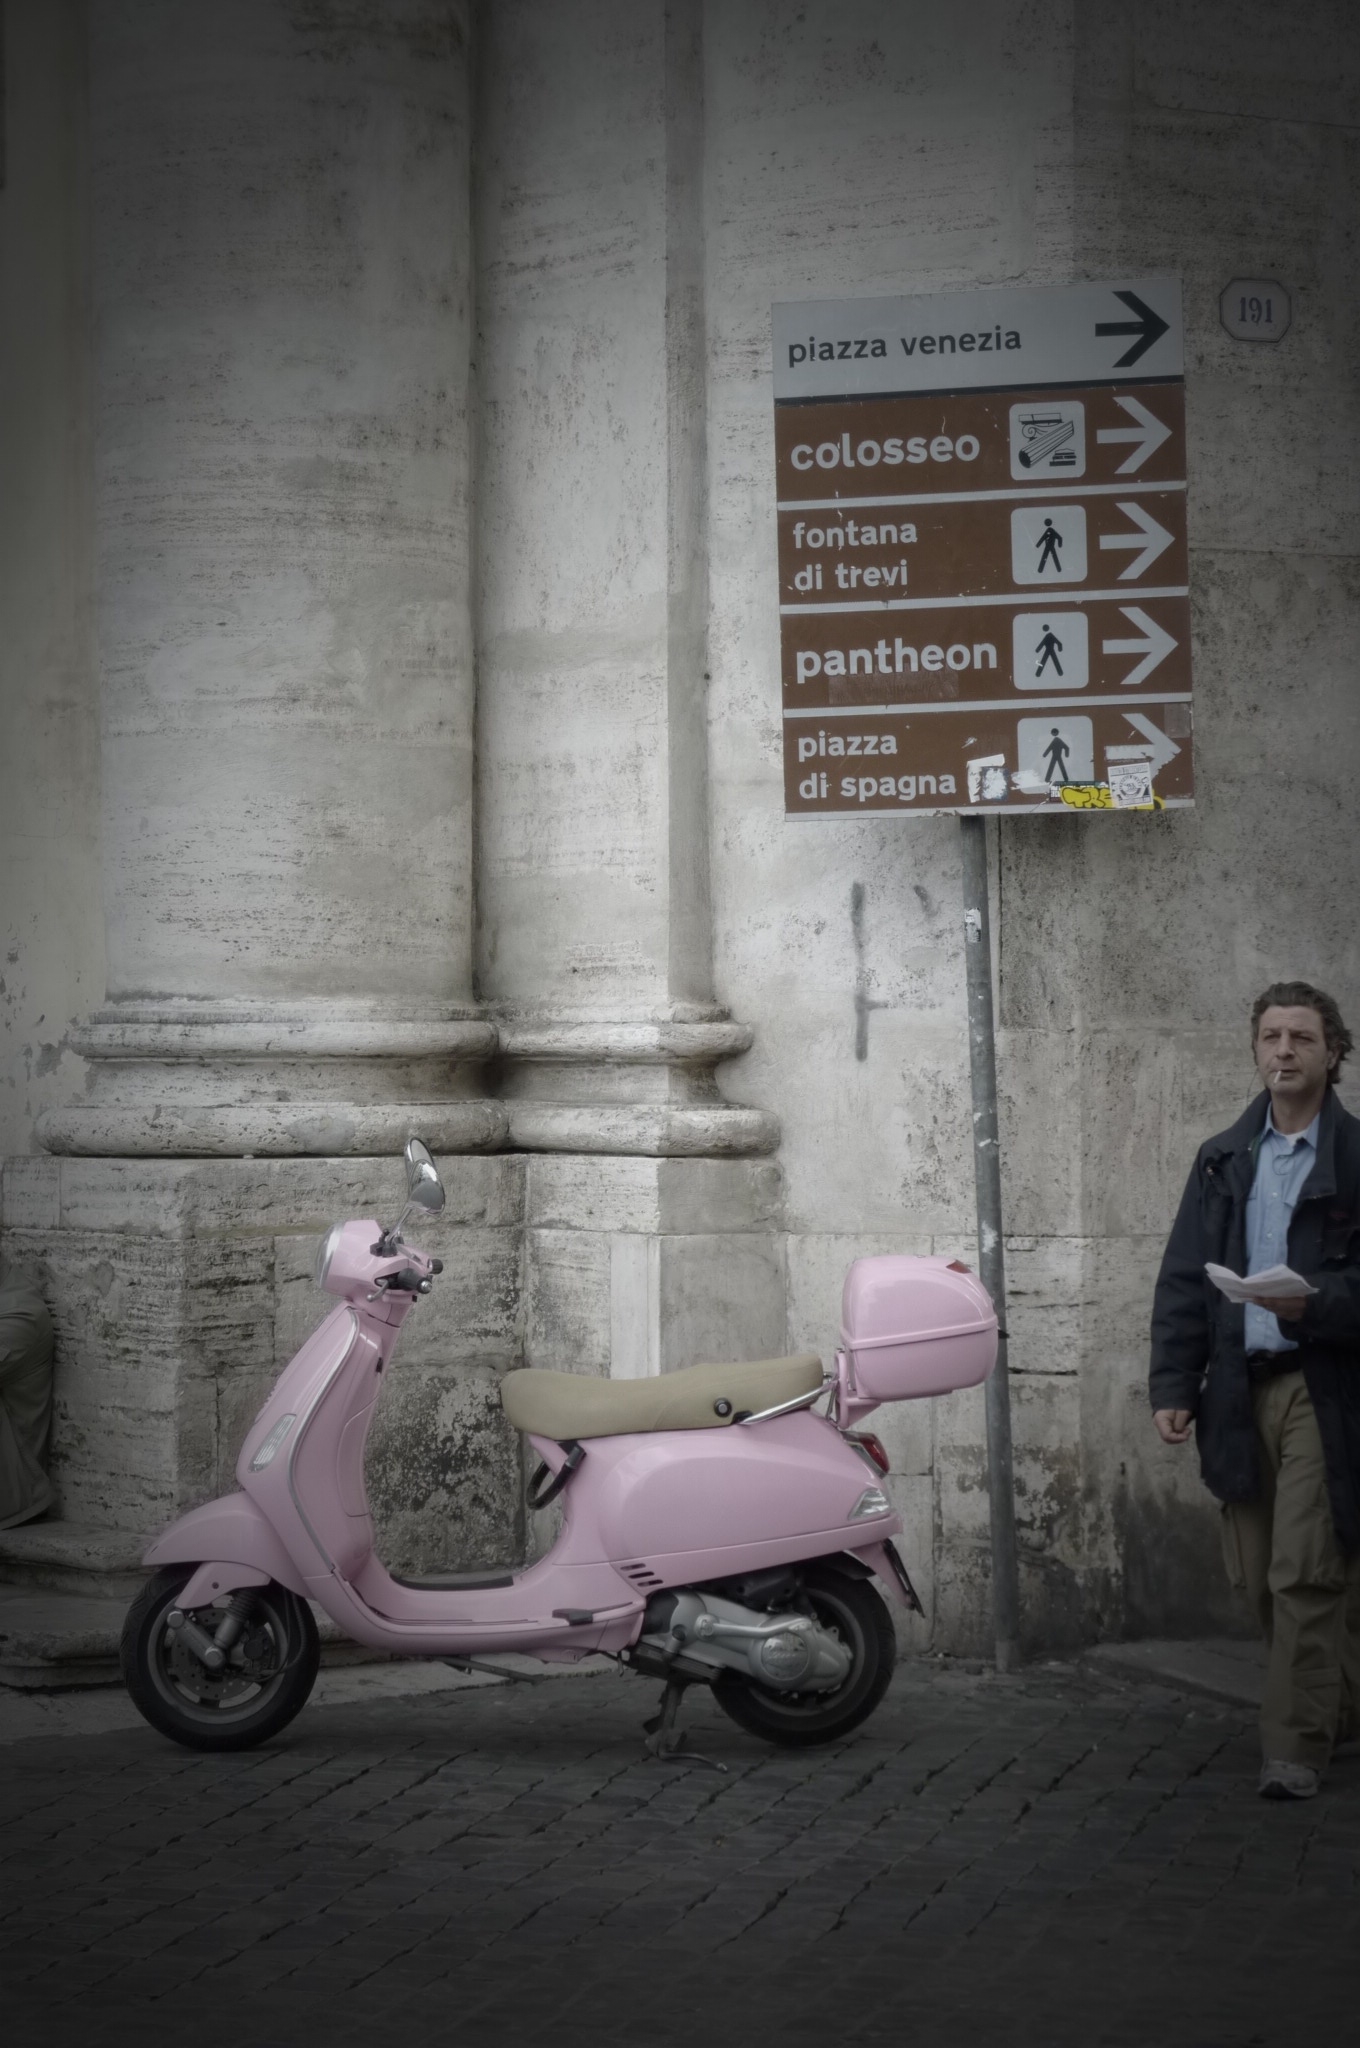 A Roman walks past a pink motorino in Rome